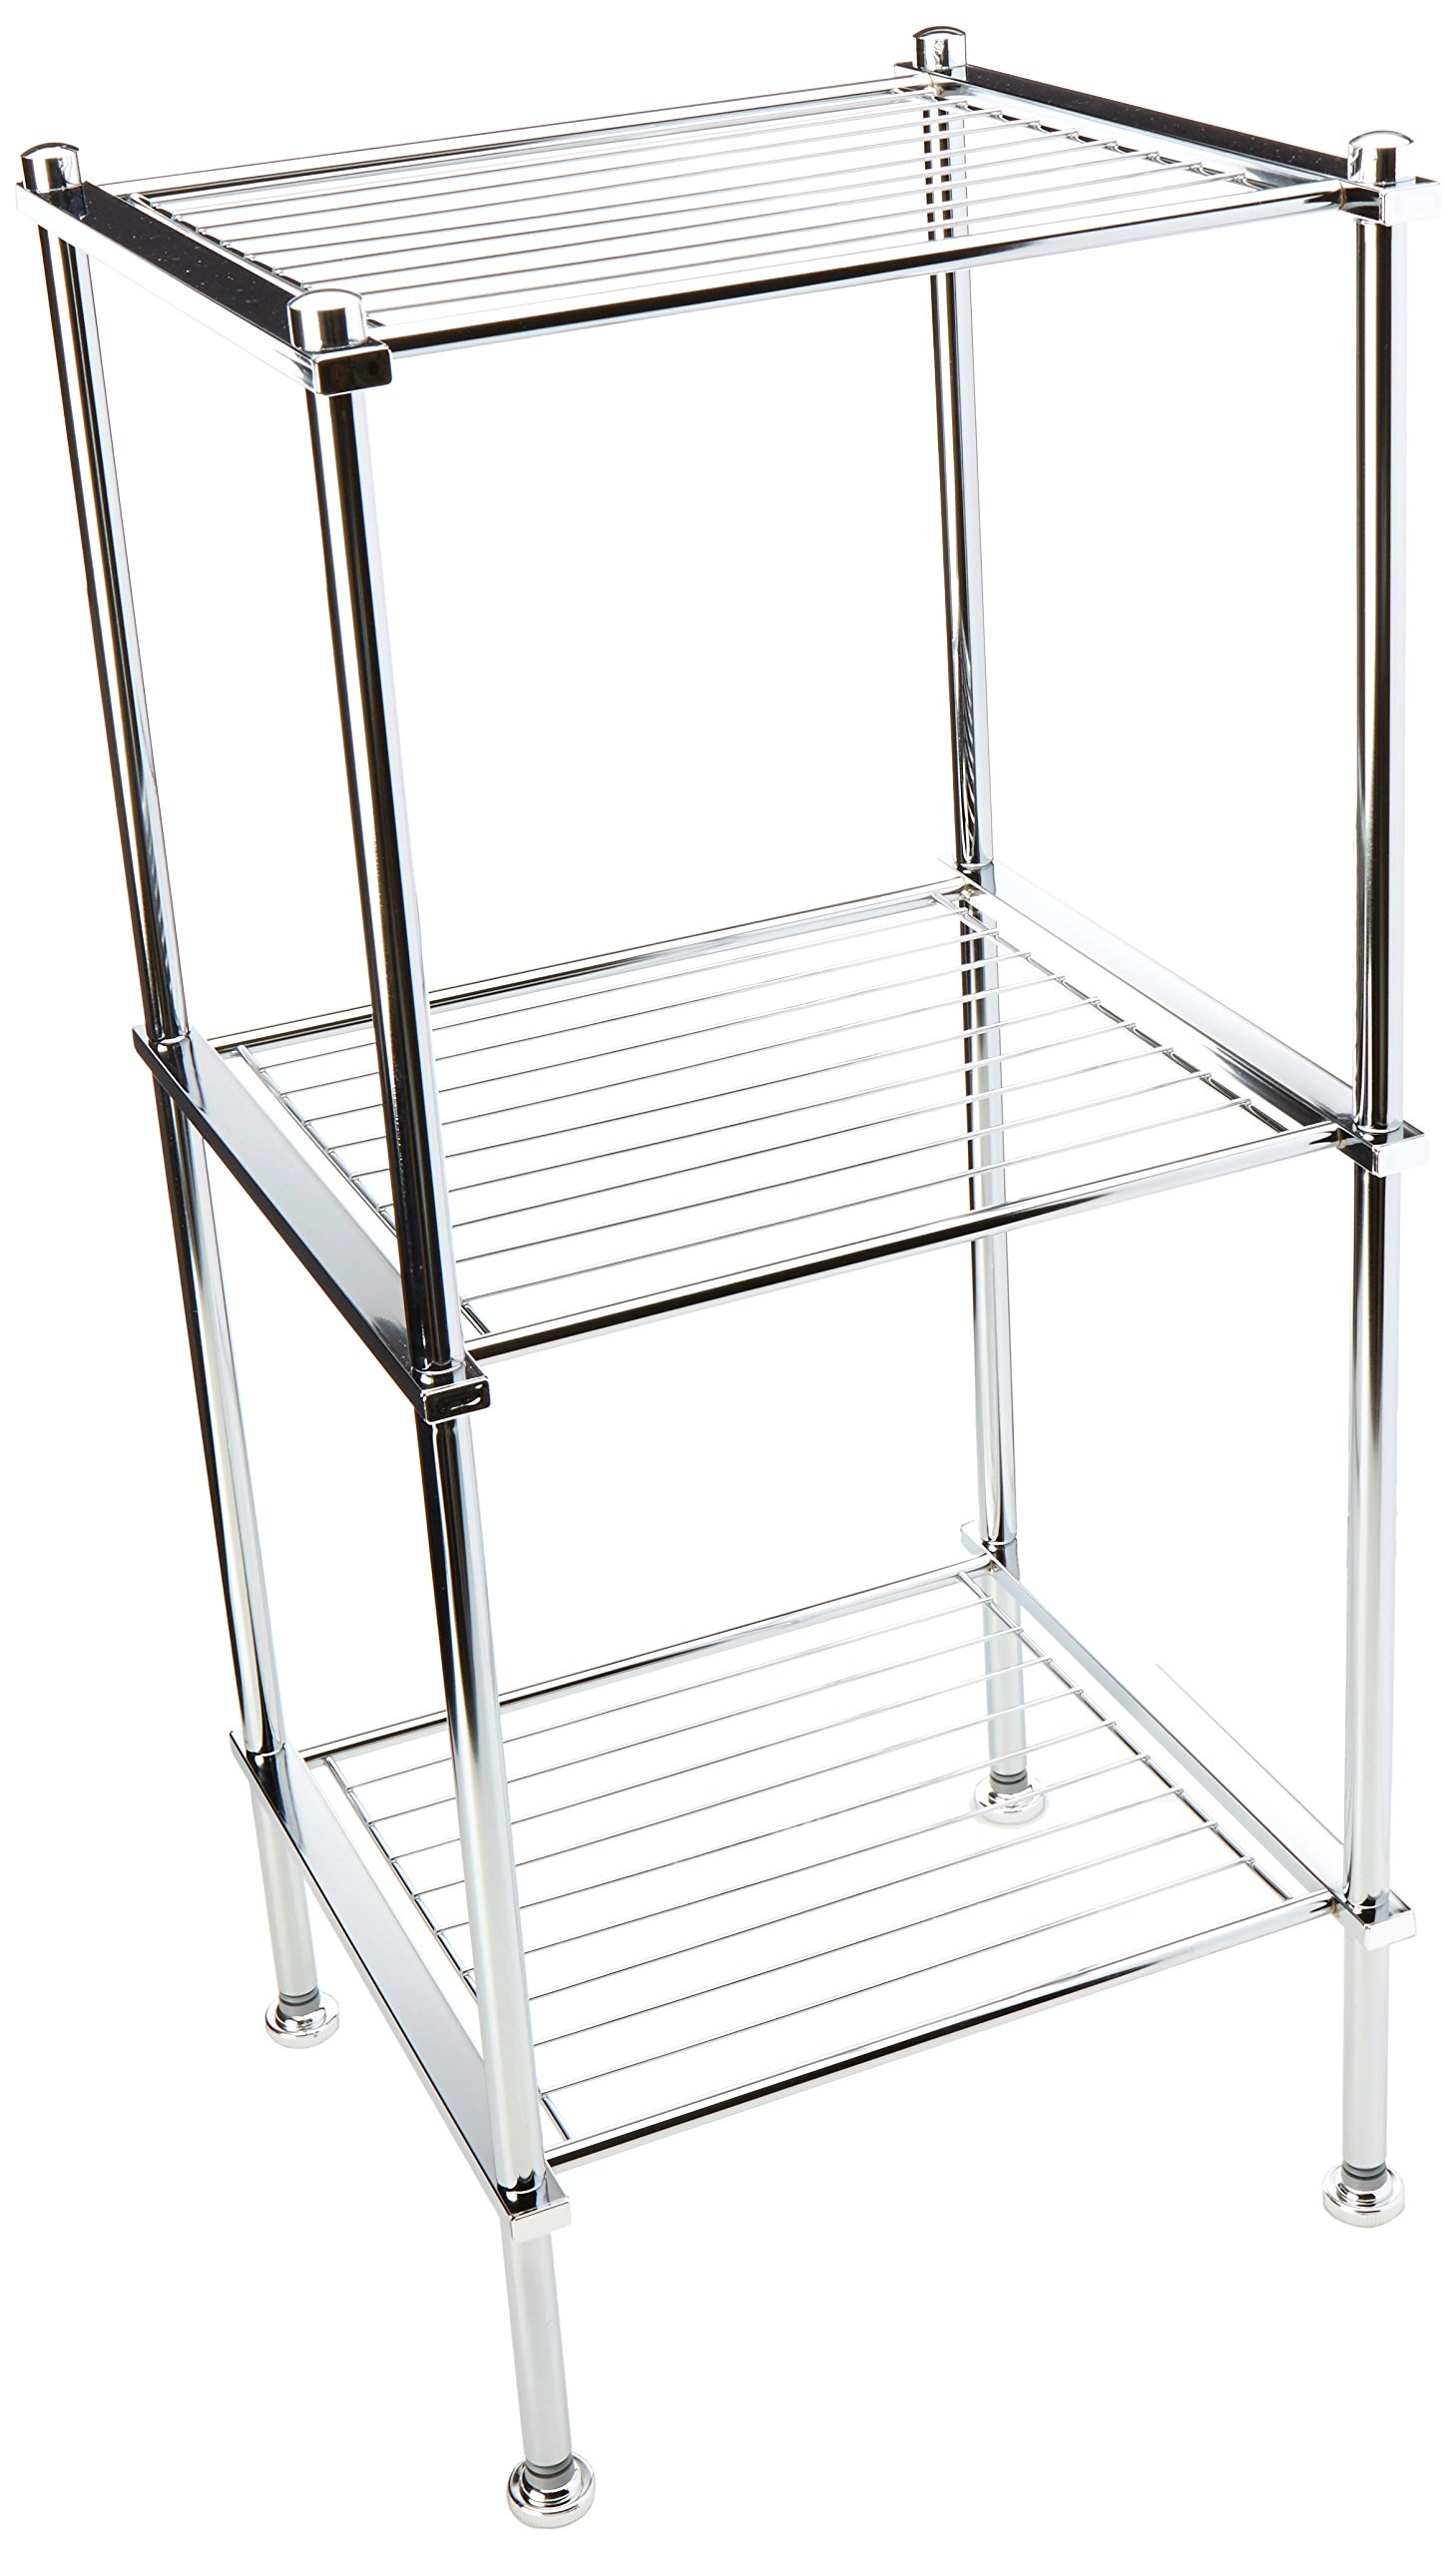 Organize It All 3 Tier Chrome Freestanding Bathroom Storage Shelf by Organize It All